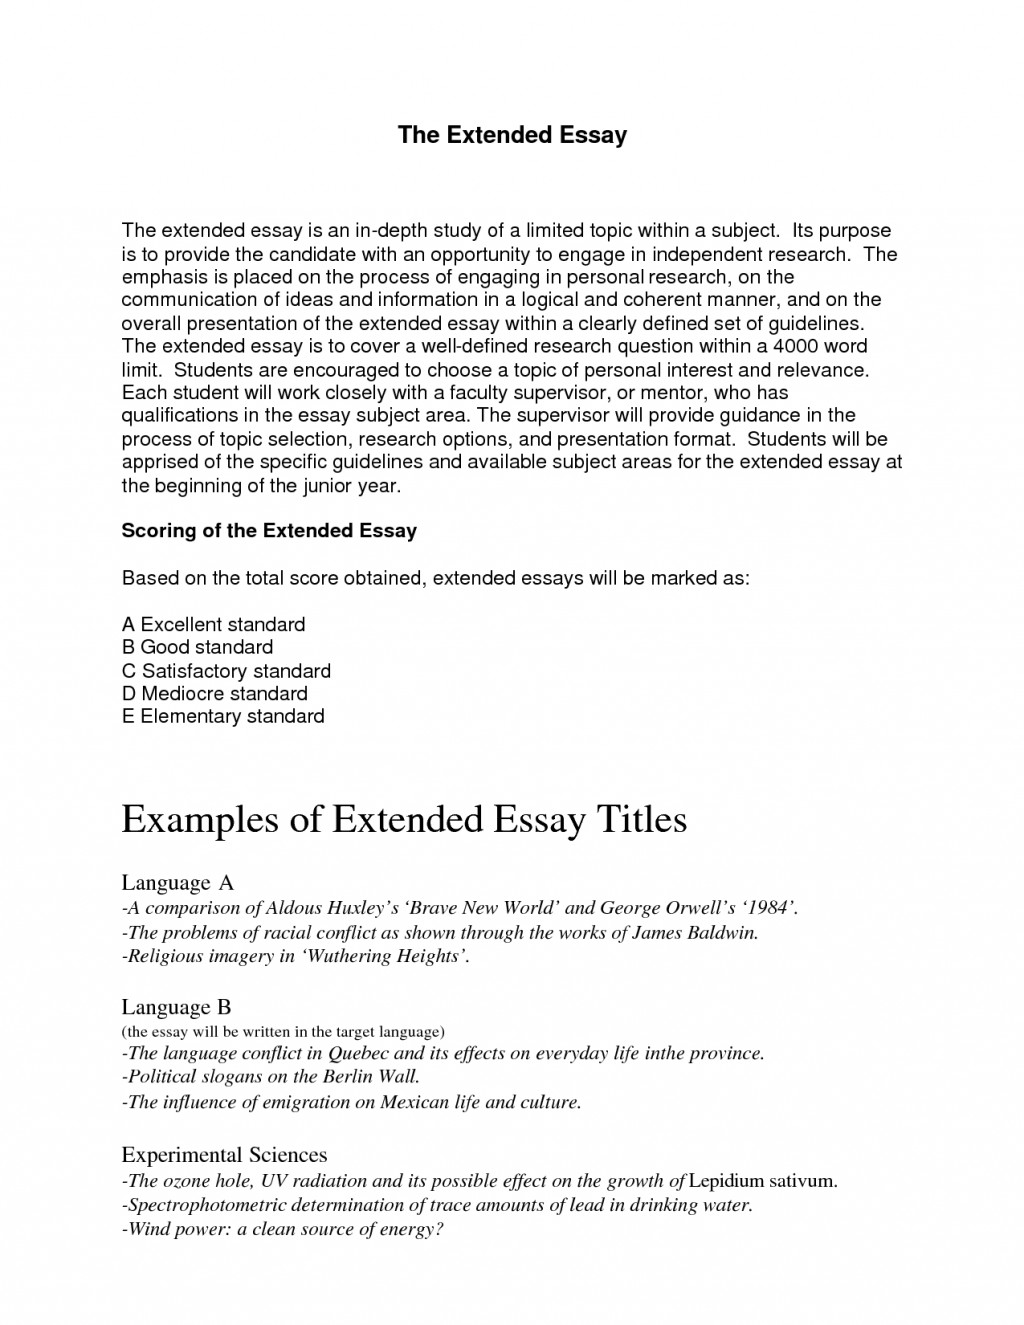 004 Historyxtendedssay Topics Bunch Ideas Of Personal Statement Sample Nutrition Cover Letter Format Columbia Spectacular How To Write Awesome History Extended Essay Questions Ib Large